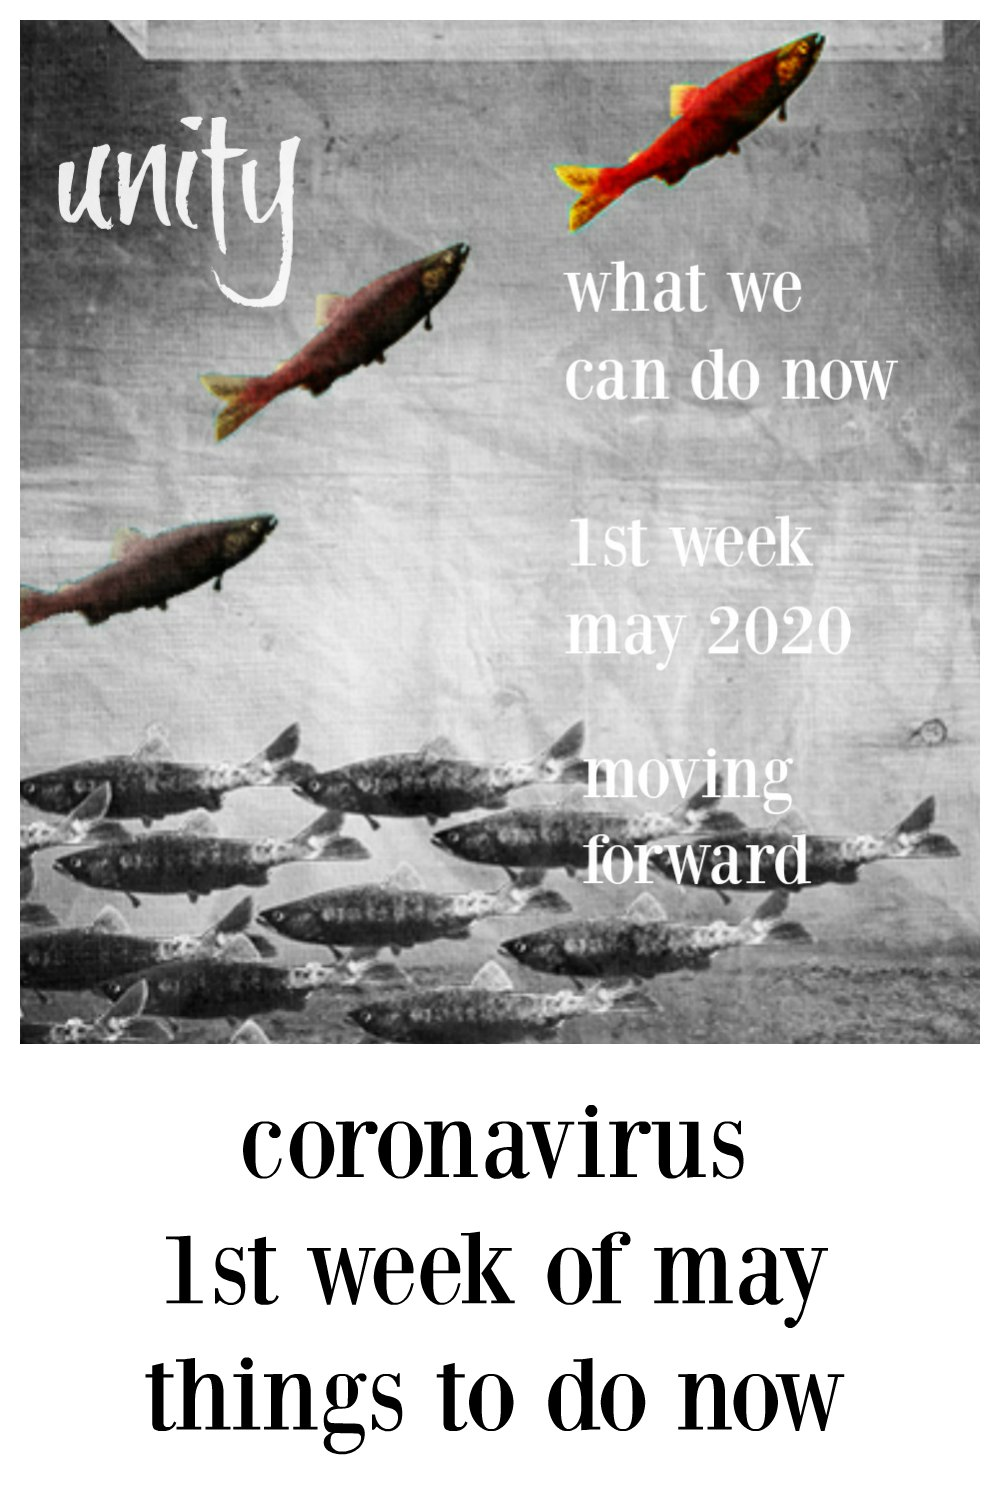 We're coming up to the end of the first week at home for Coronavirus. Just checking in & talking about what we can do now! #GroceriesCoronavirus #SafeGroceries #AreGroceriesSafe